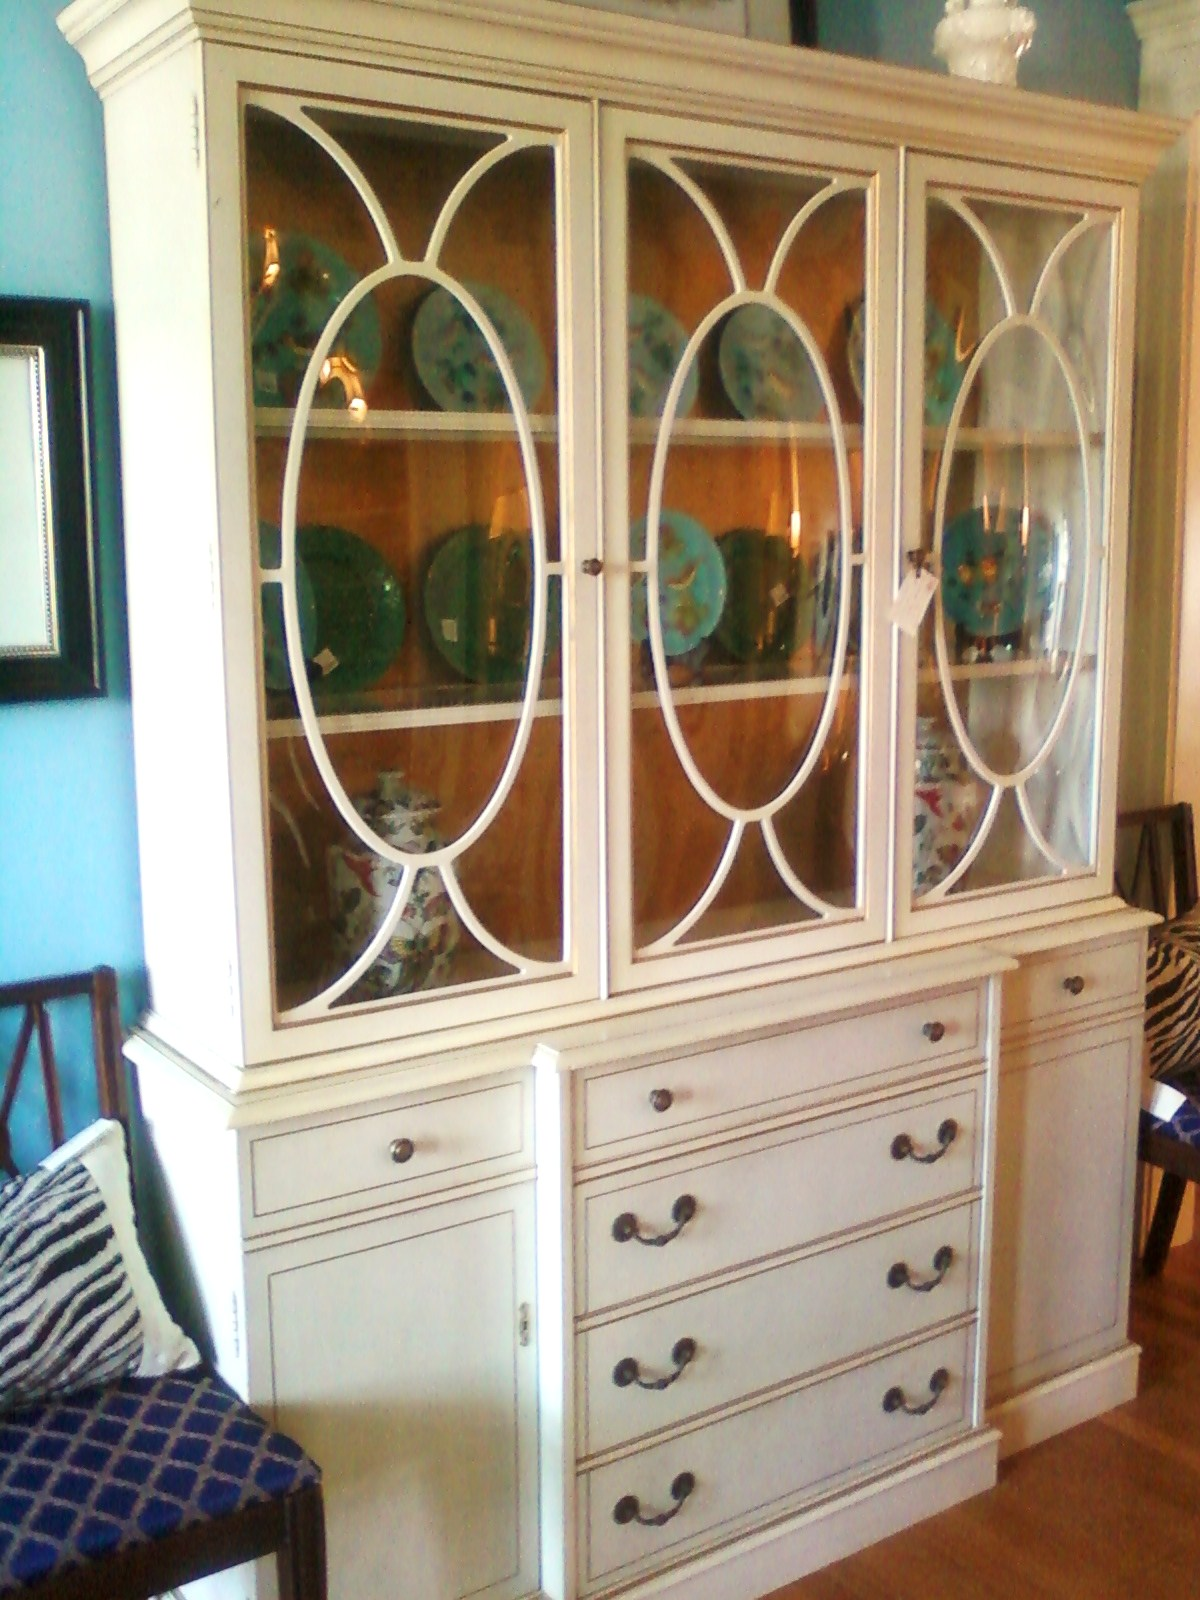 Wonderful China Cabinets: A Dining Room Classic - Emily A. Clark LF85